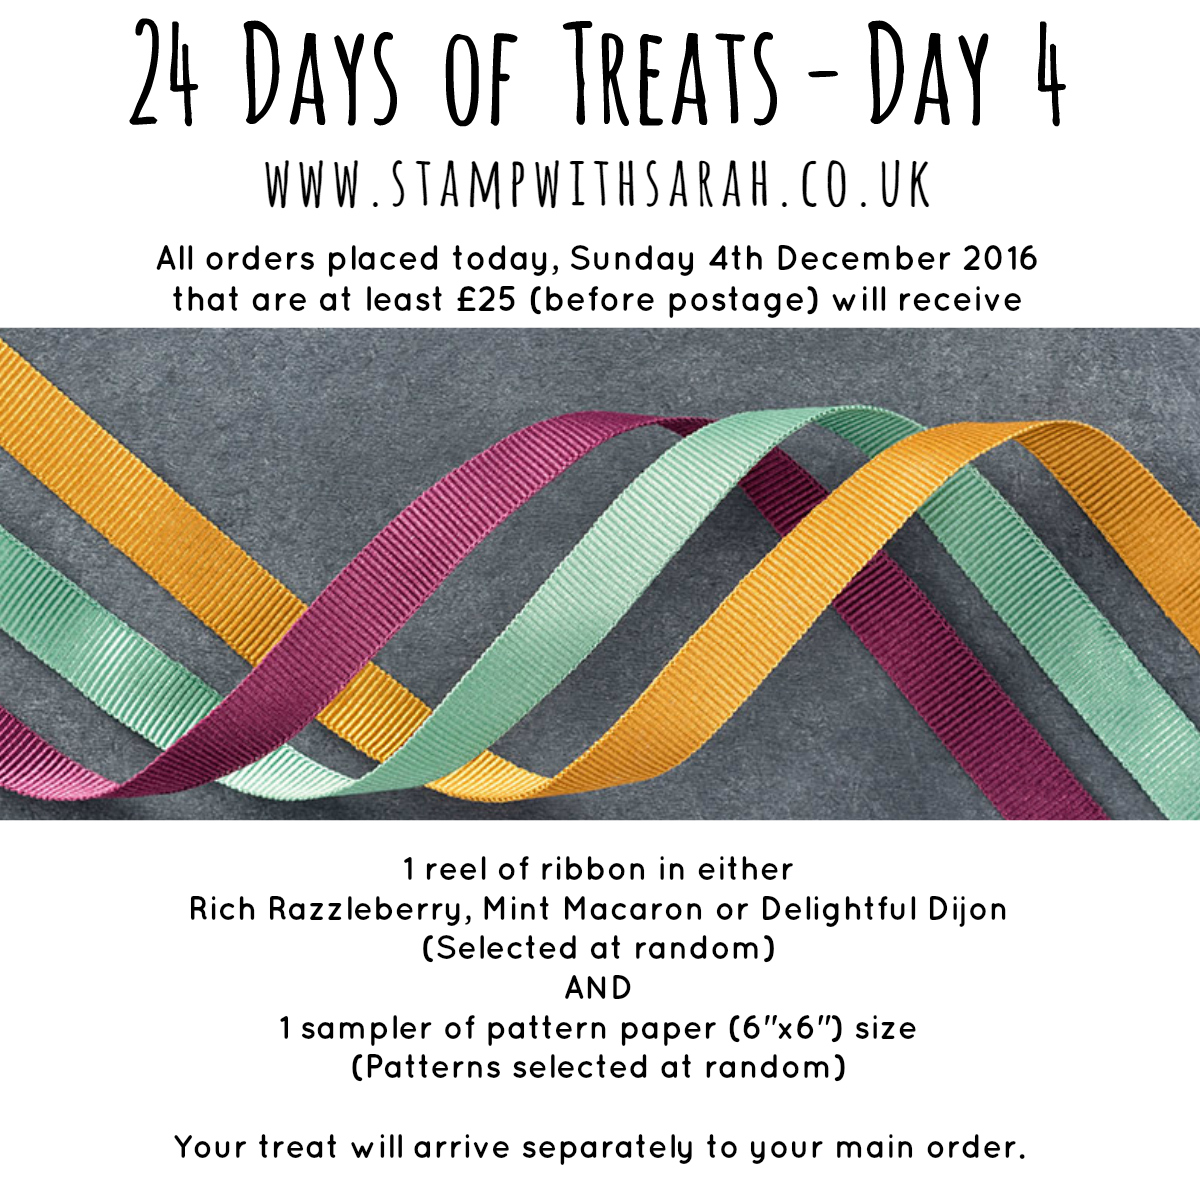 24-days-of-treats-day-4